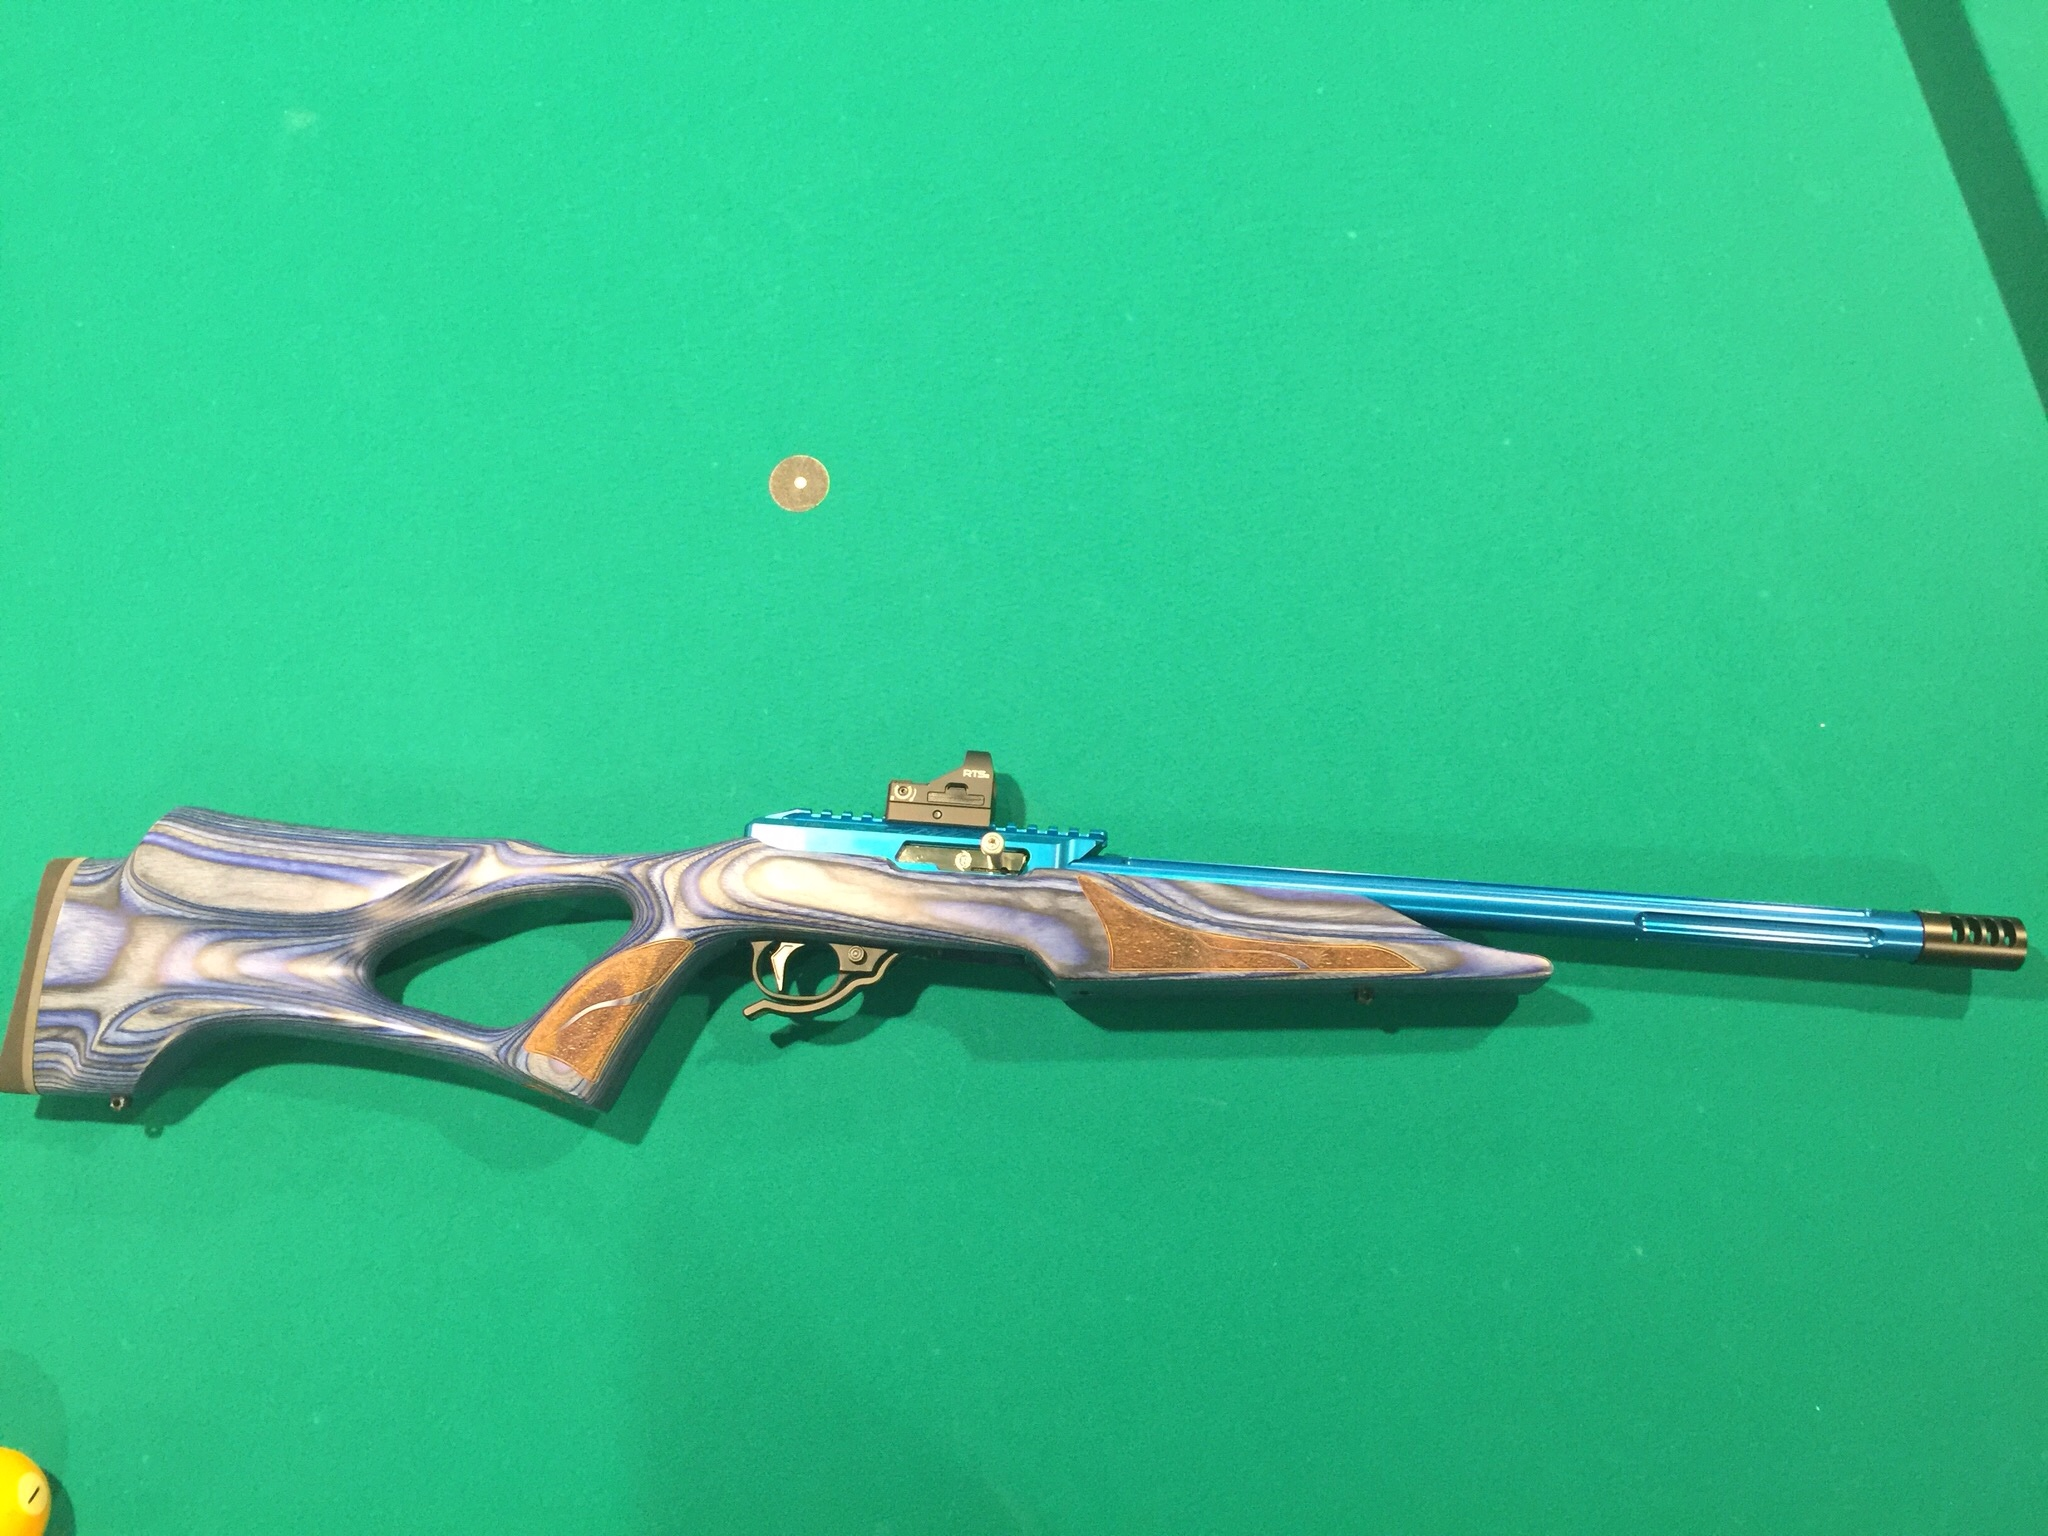 What rimfire do you shoot for Steel Challenge and why